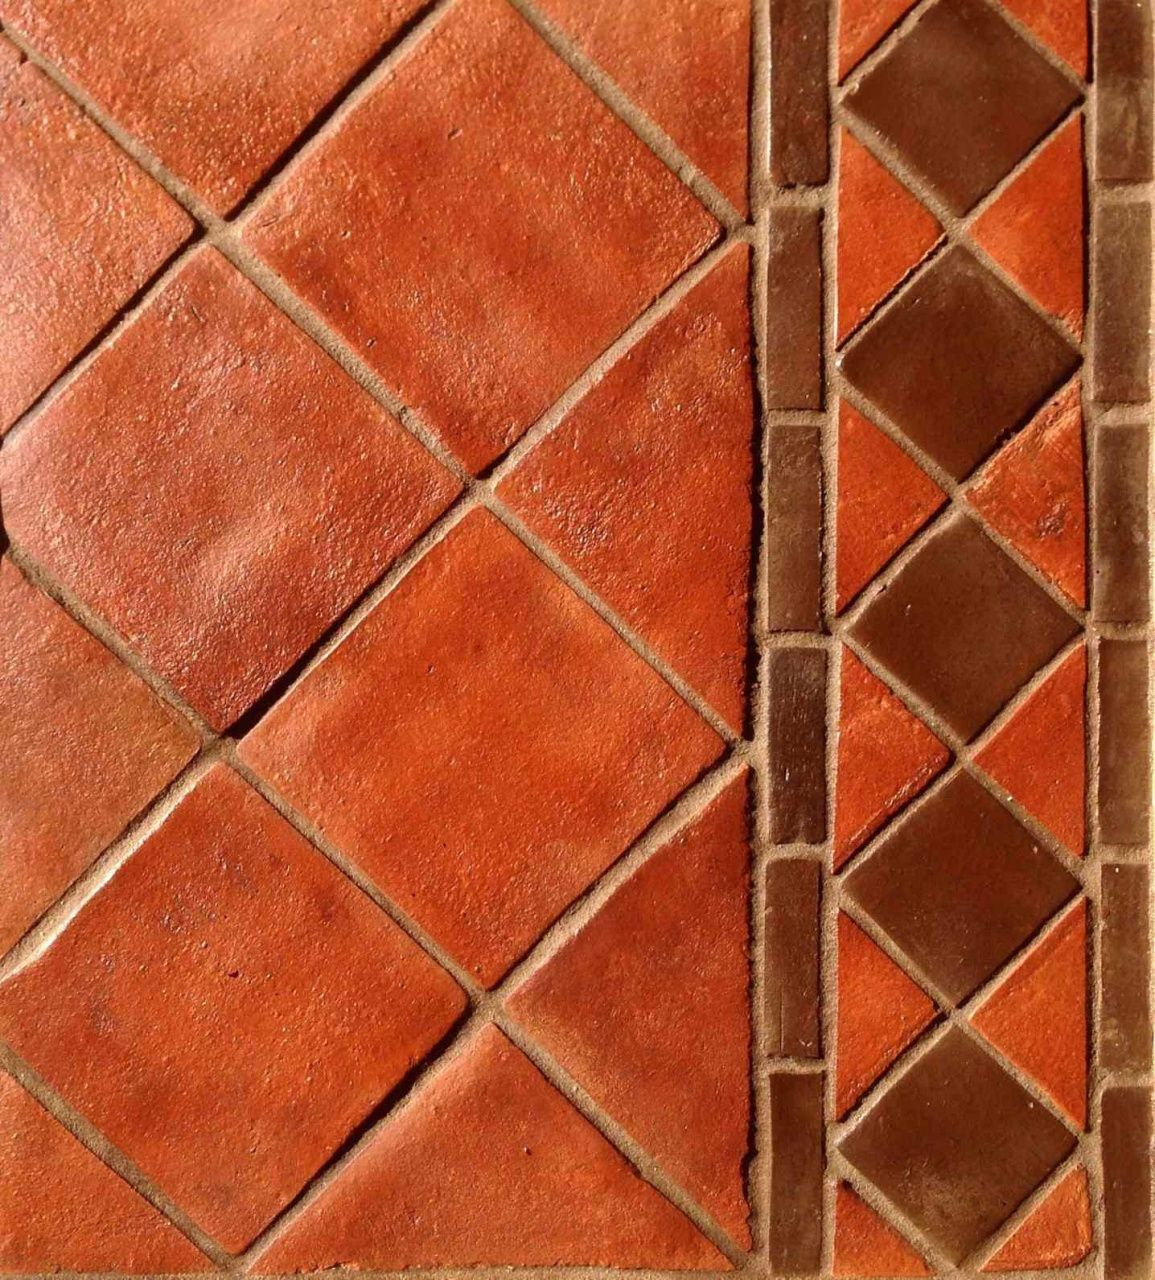 Discontinued Ceramic Tile For Sale In 2020 With Images